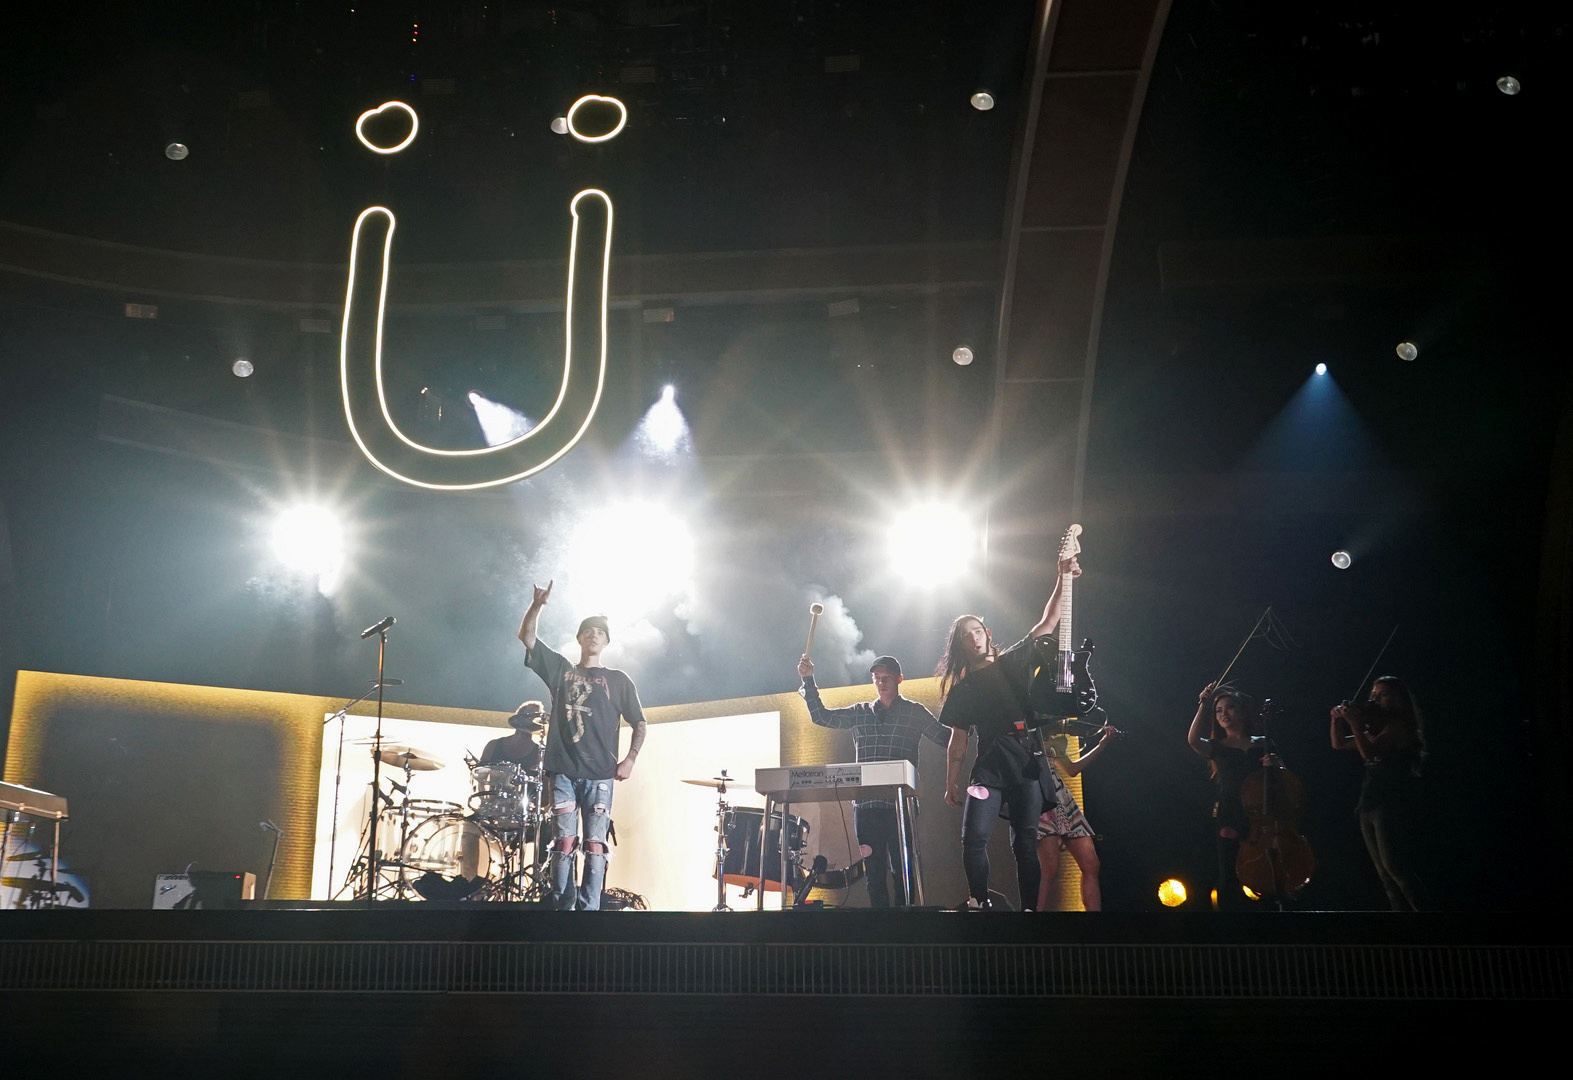 It's rehearsal time for Justin Bieber and Jack Ü.